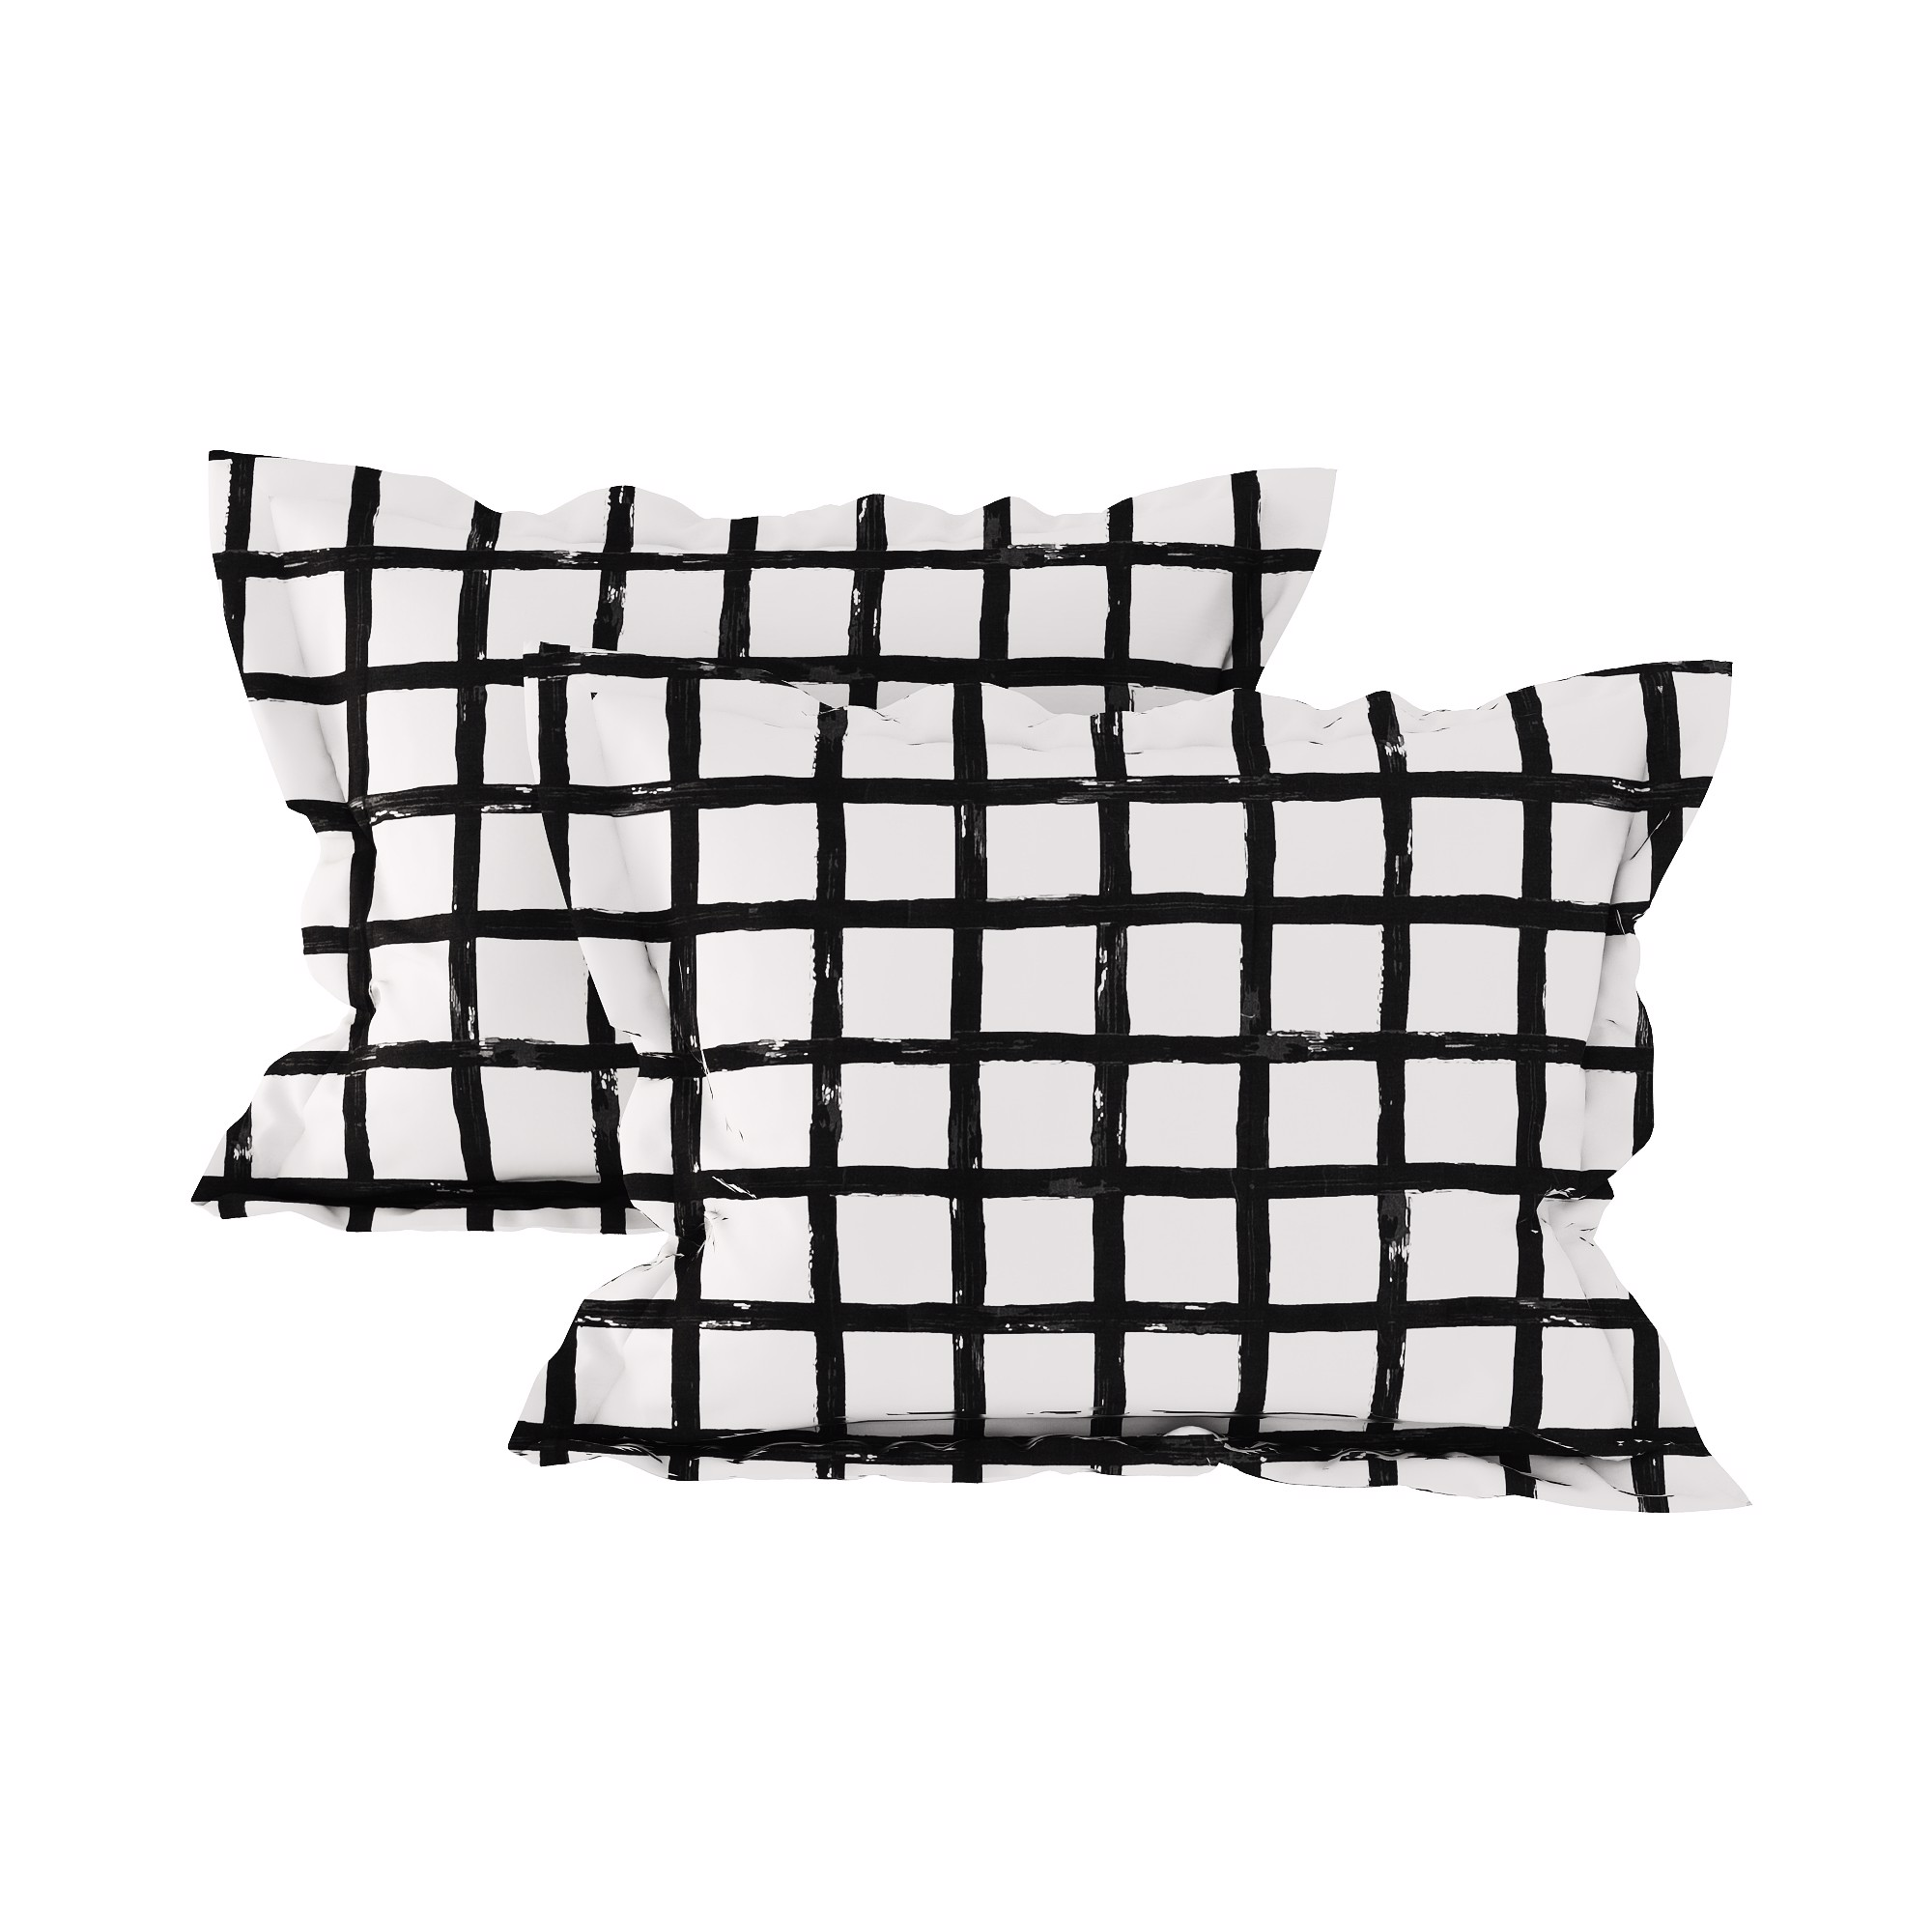 Pillow case 172 Black grid on white